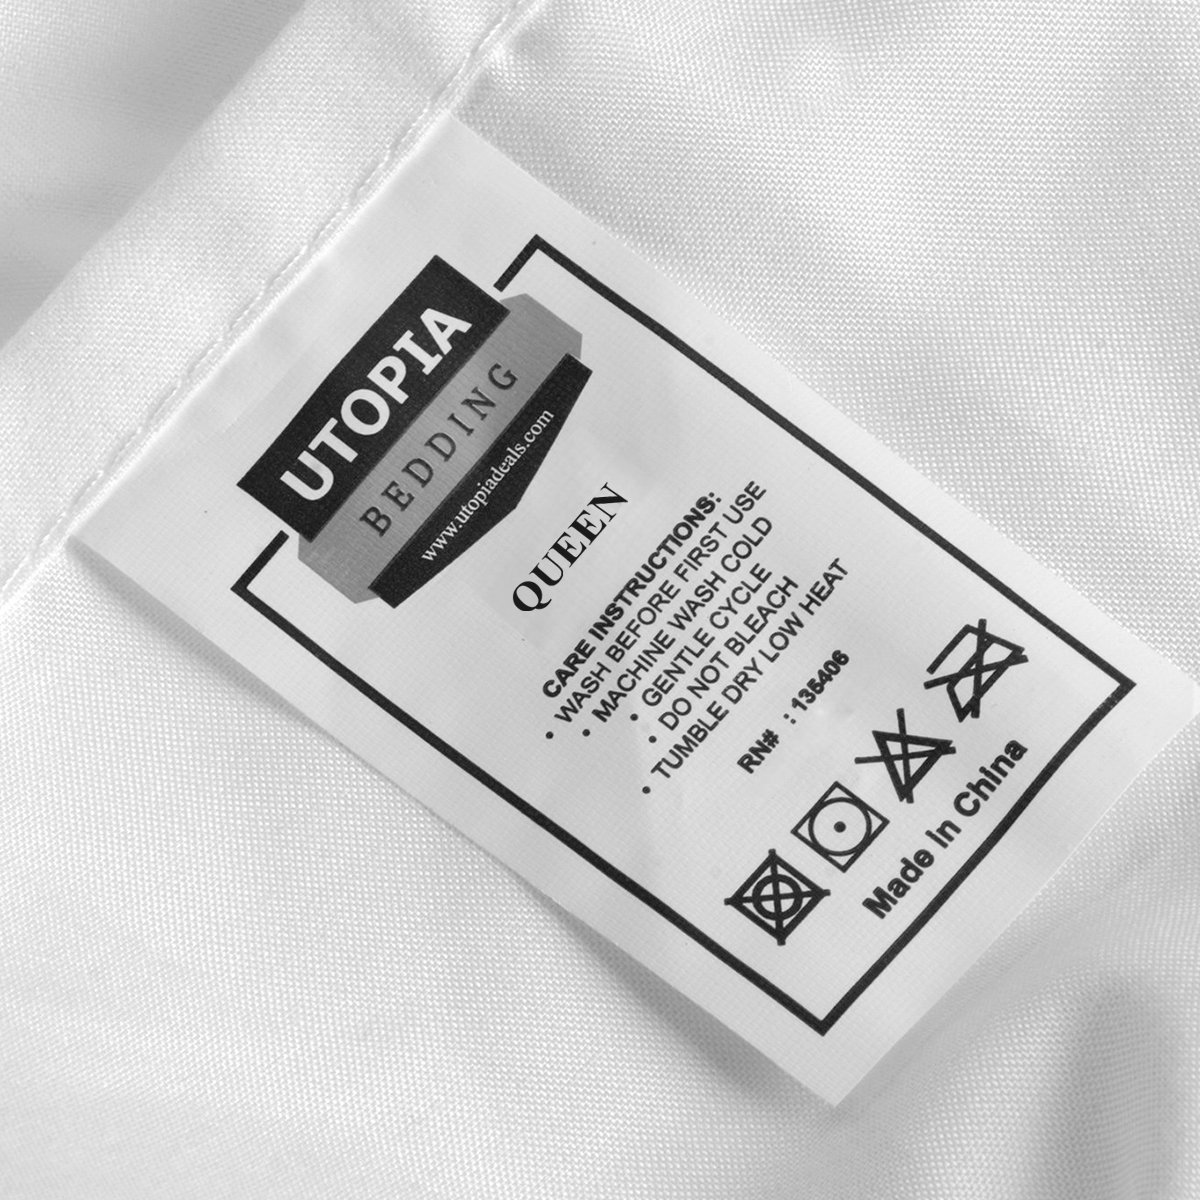 Utopia Bedding Fitted Sheet (Pack of 6, Queen, White) Deep Pocket Brushed Microfiber, Breathable, Soft and Comfortable - Wrinkle, Fade, Stain and Abrasion Resistant - Hotel Quality - Durable